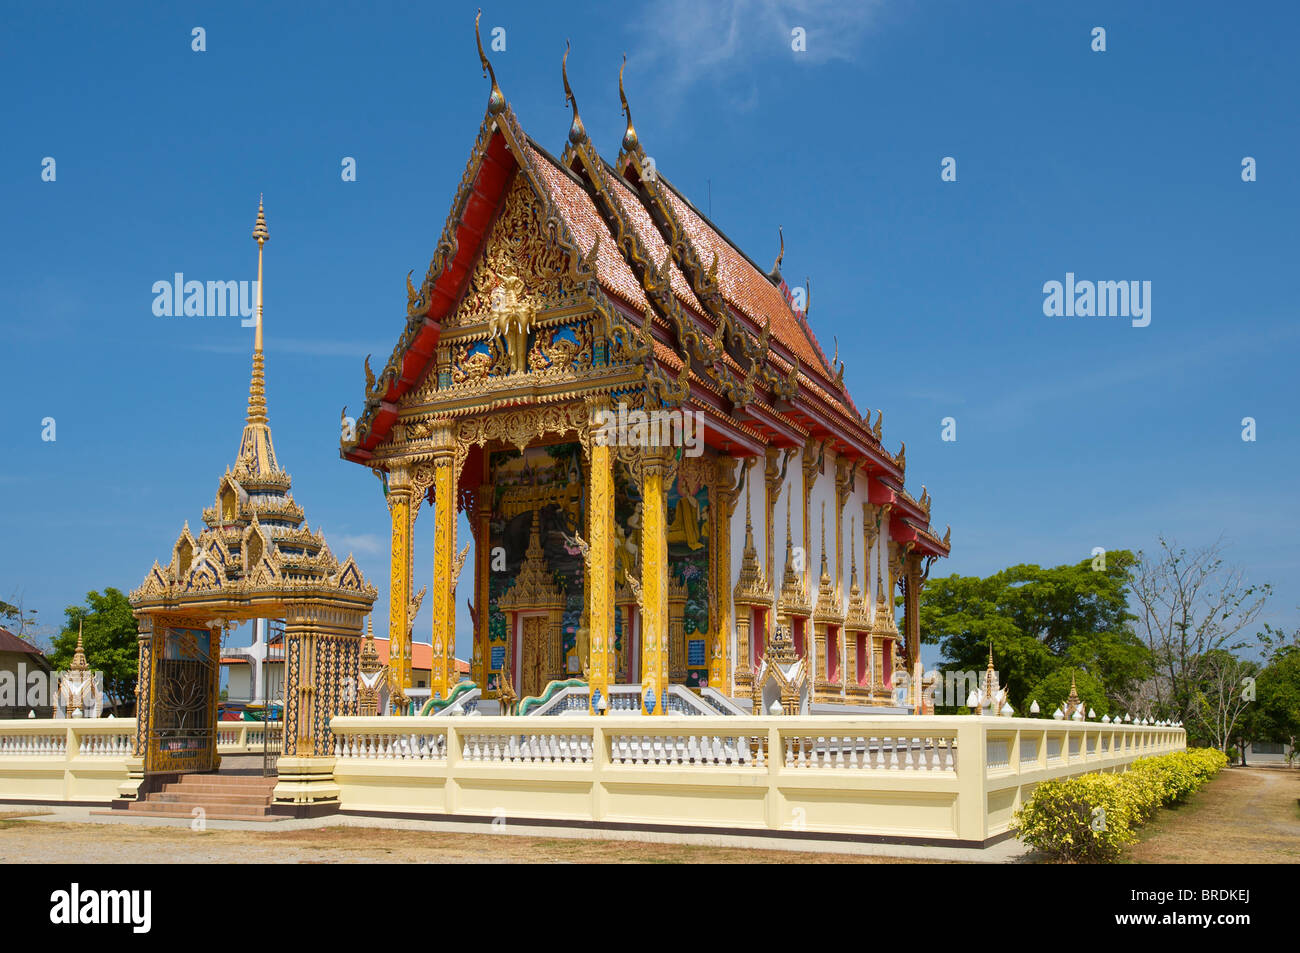 Temple nearby Thalang, Choeng Thale, Phuket, Thailand Stock Photo